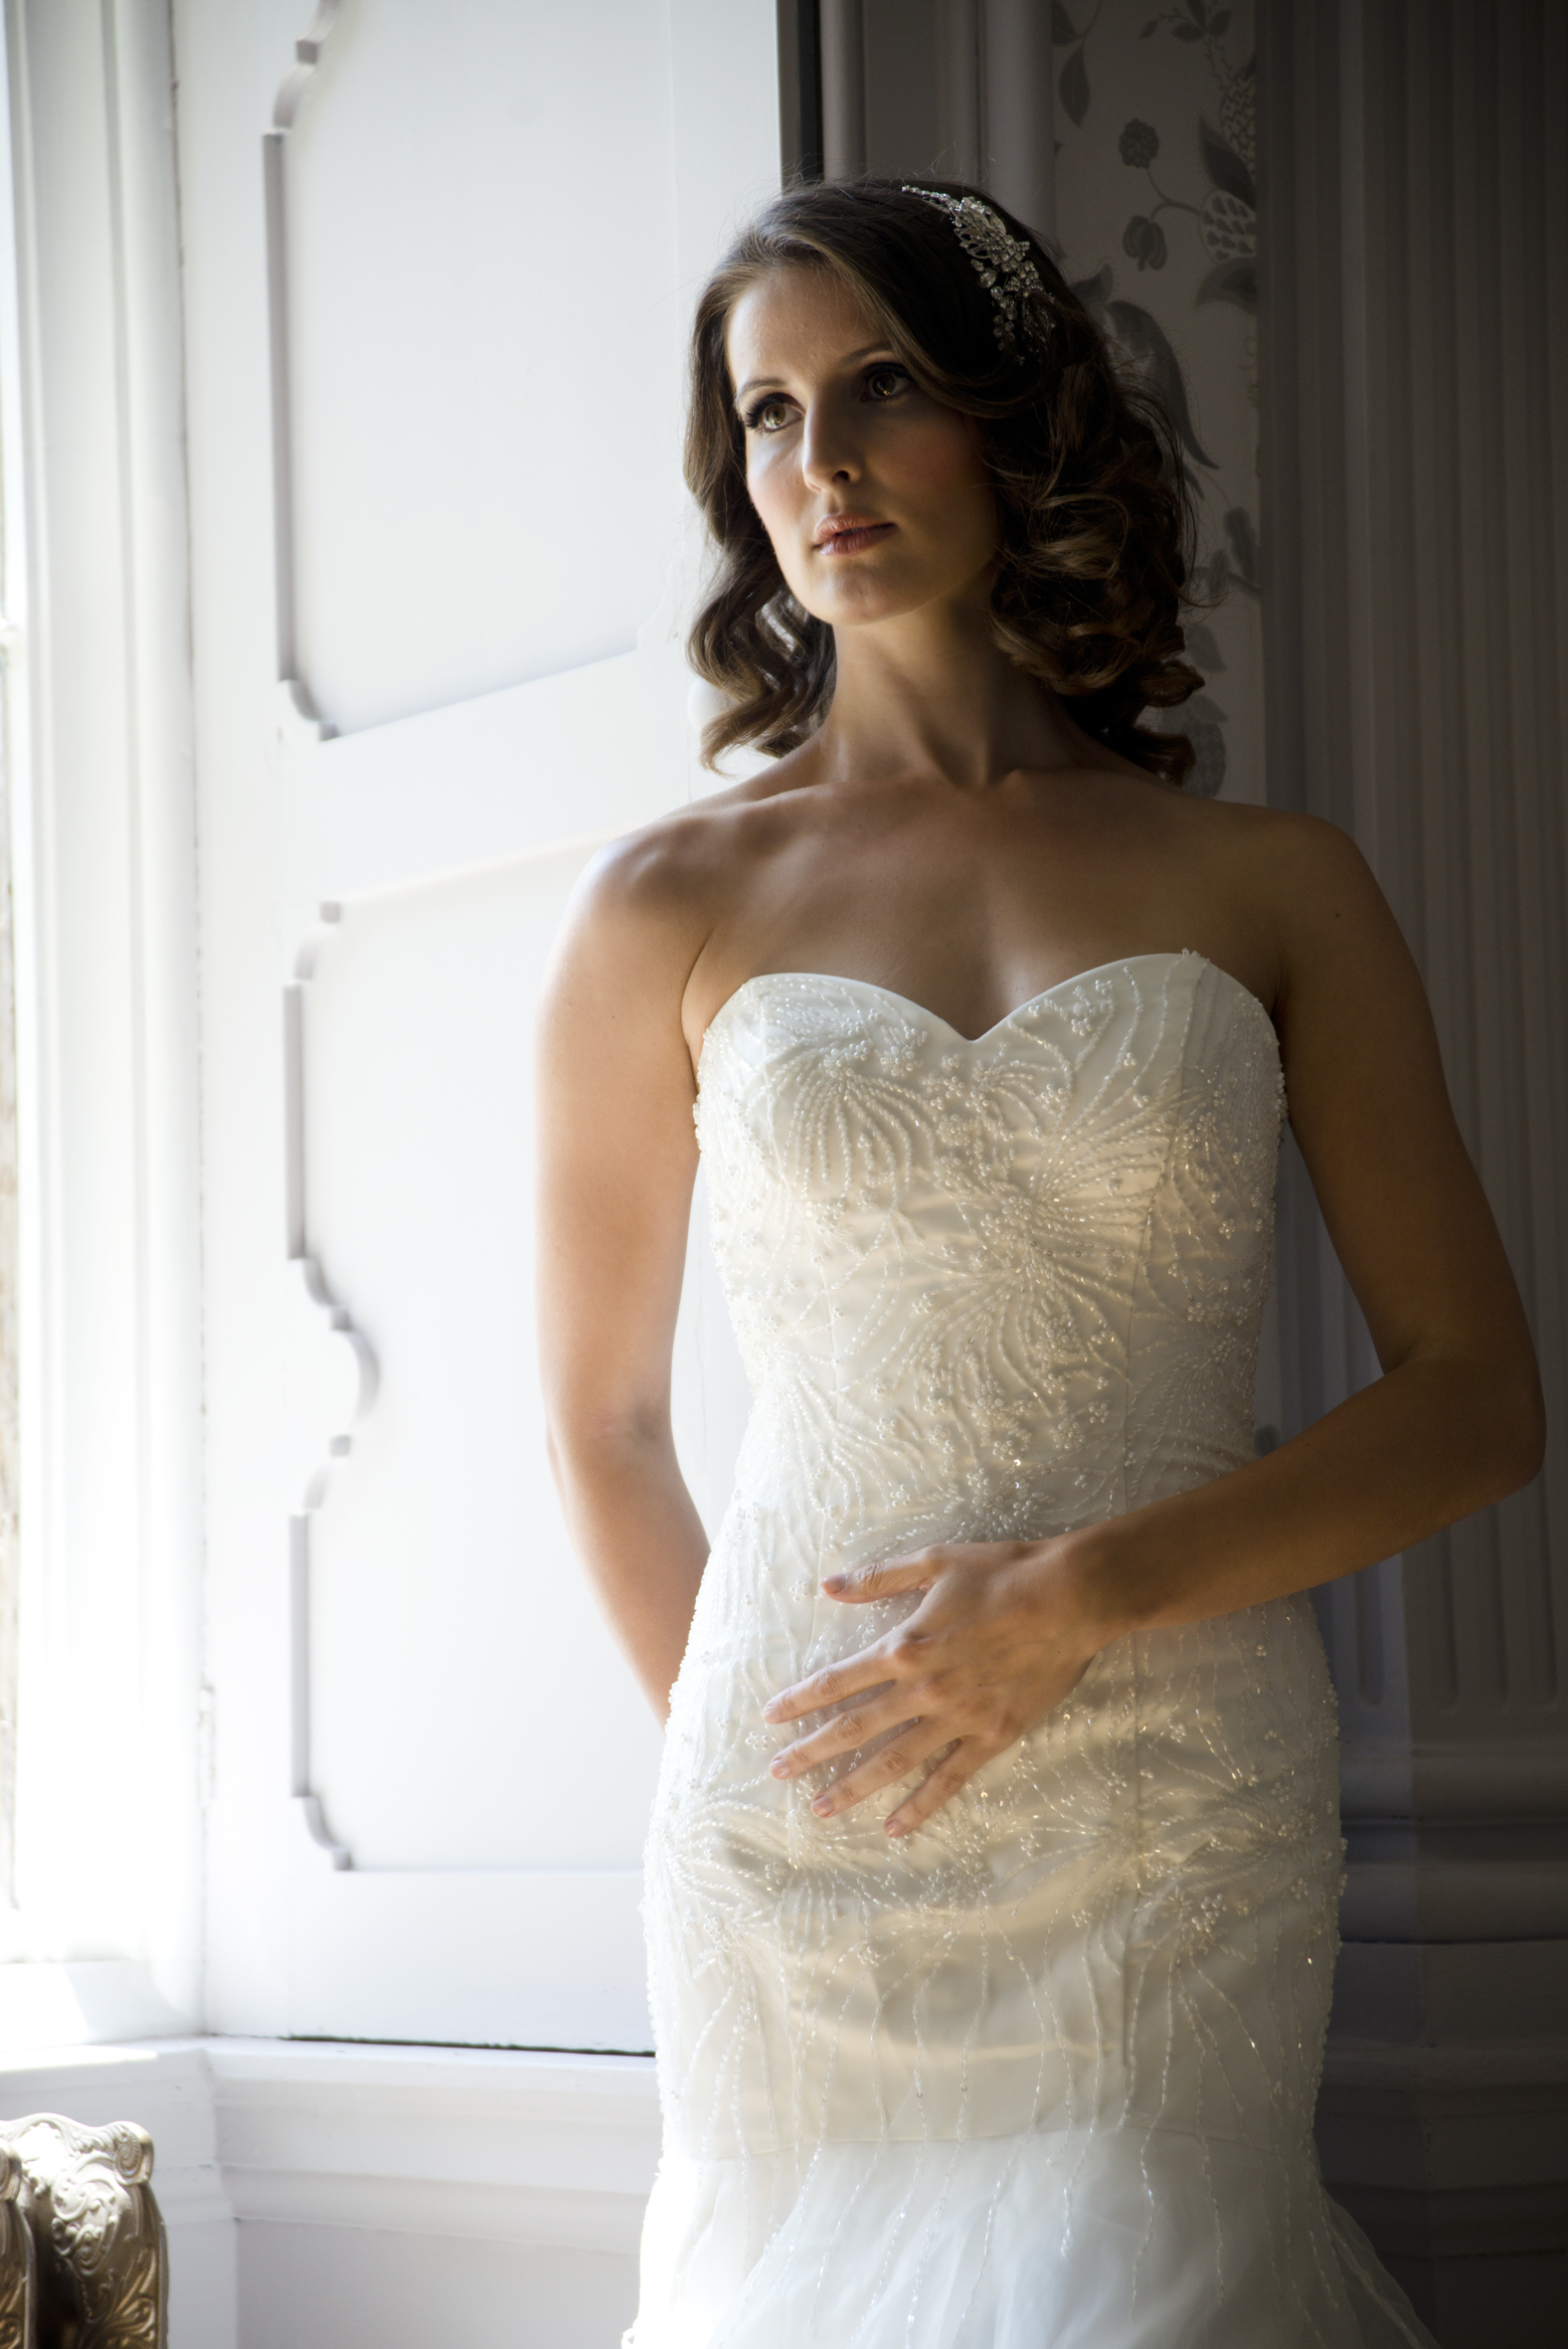 A drop waist gown with fitted bodice and full skirt. The bodice is fully embroidered with delicate beads and crystals.